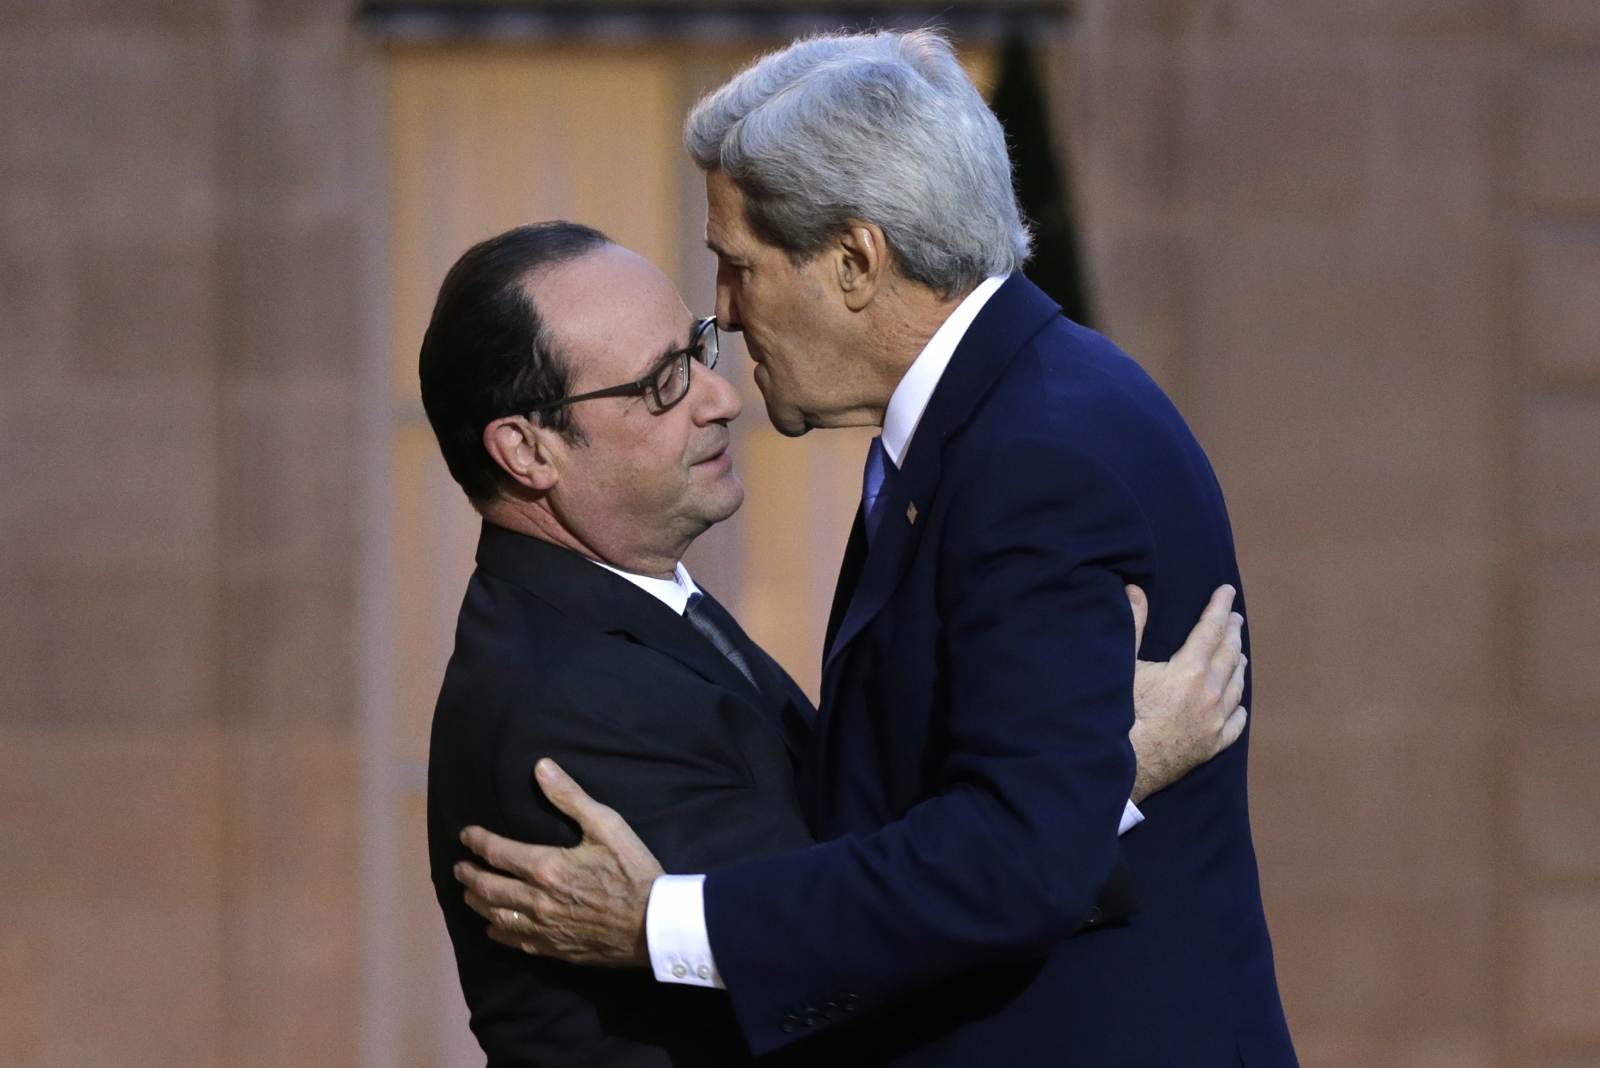 French President Francois Hollande (L) welcomes U.S. Secretary of State John Kerry